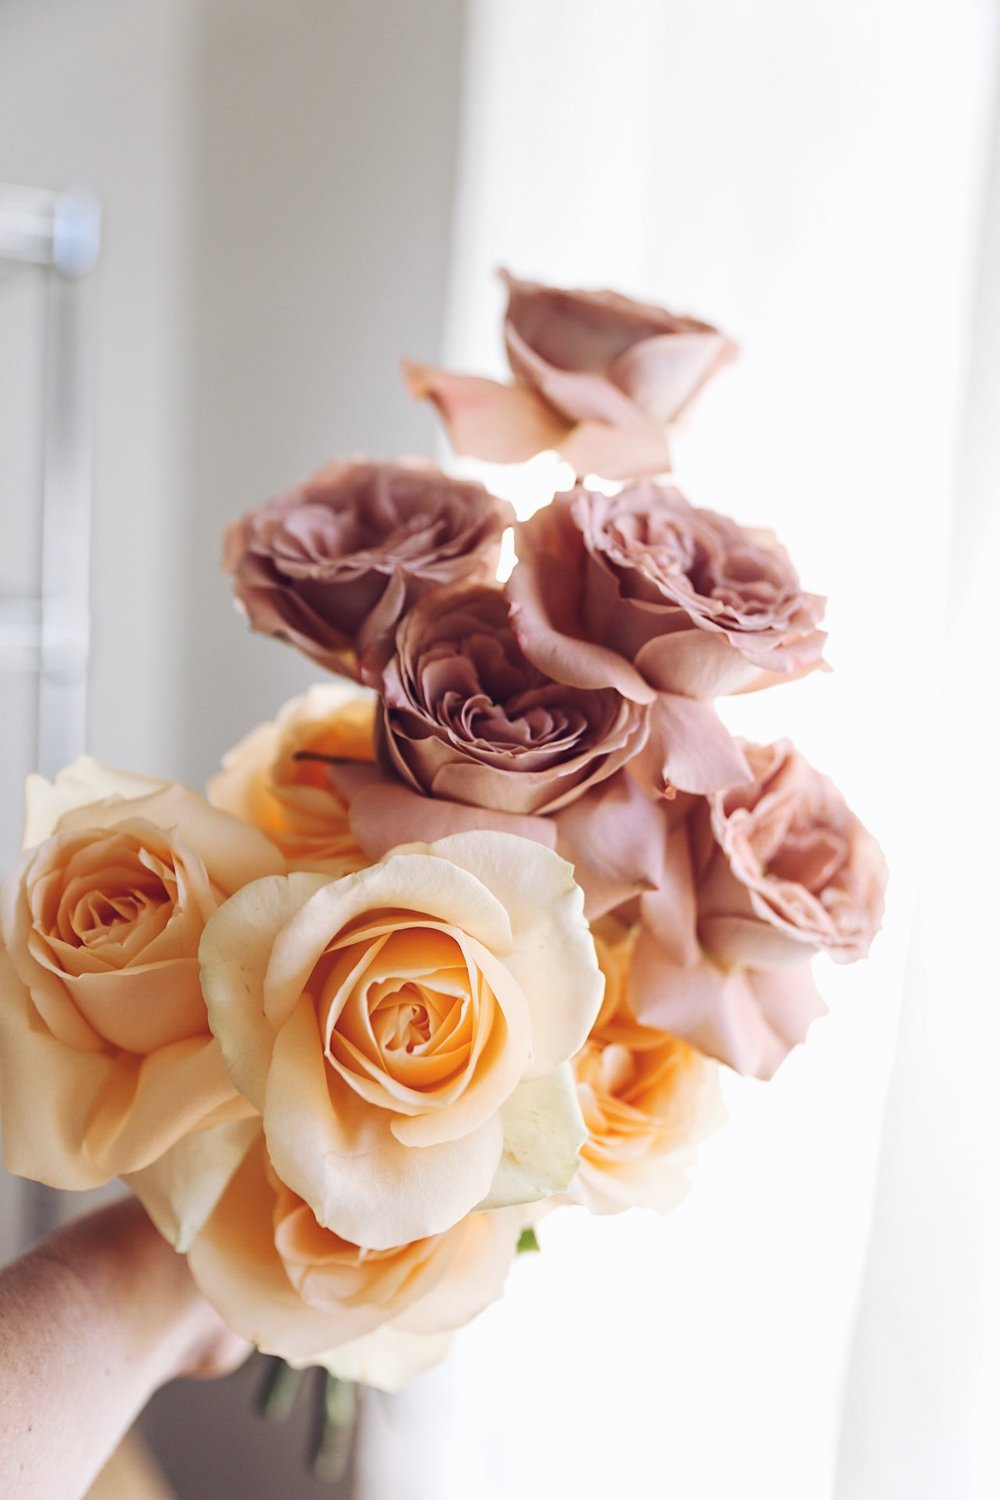 TIP:  In the colder months, I buy most of my flowers earlier in the week for a weekend event to give them more time to open.  If you gently peel back the outer petals of roses, this helps to make them look fuller and more open.